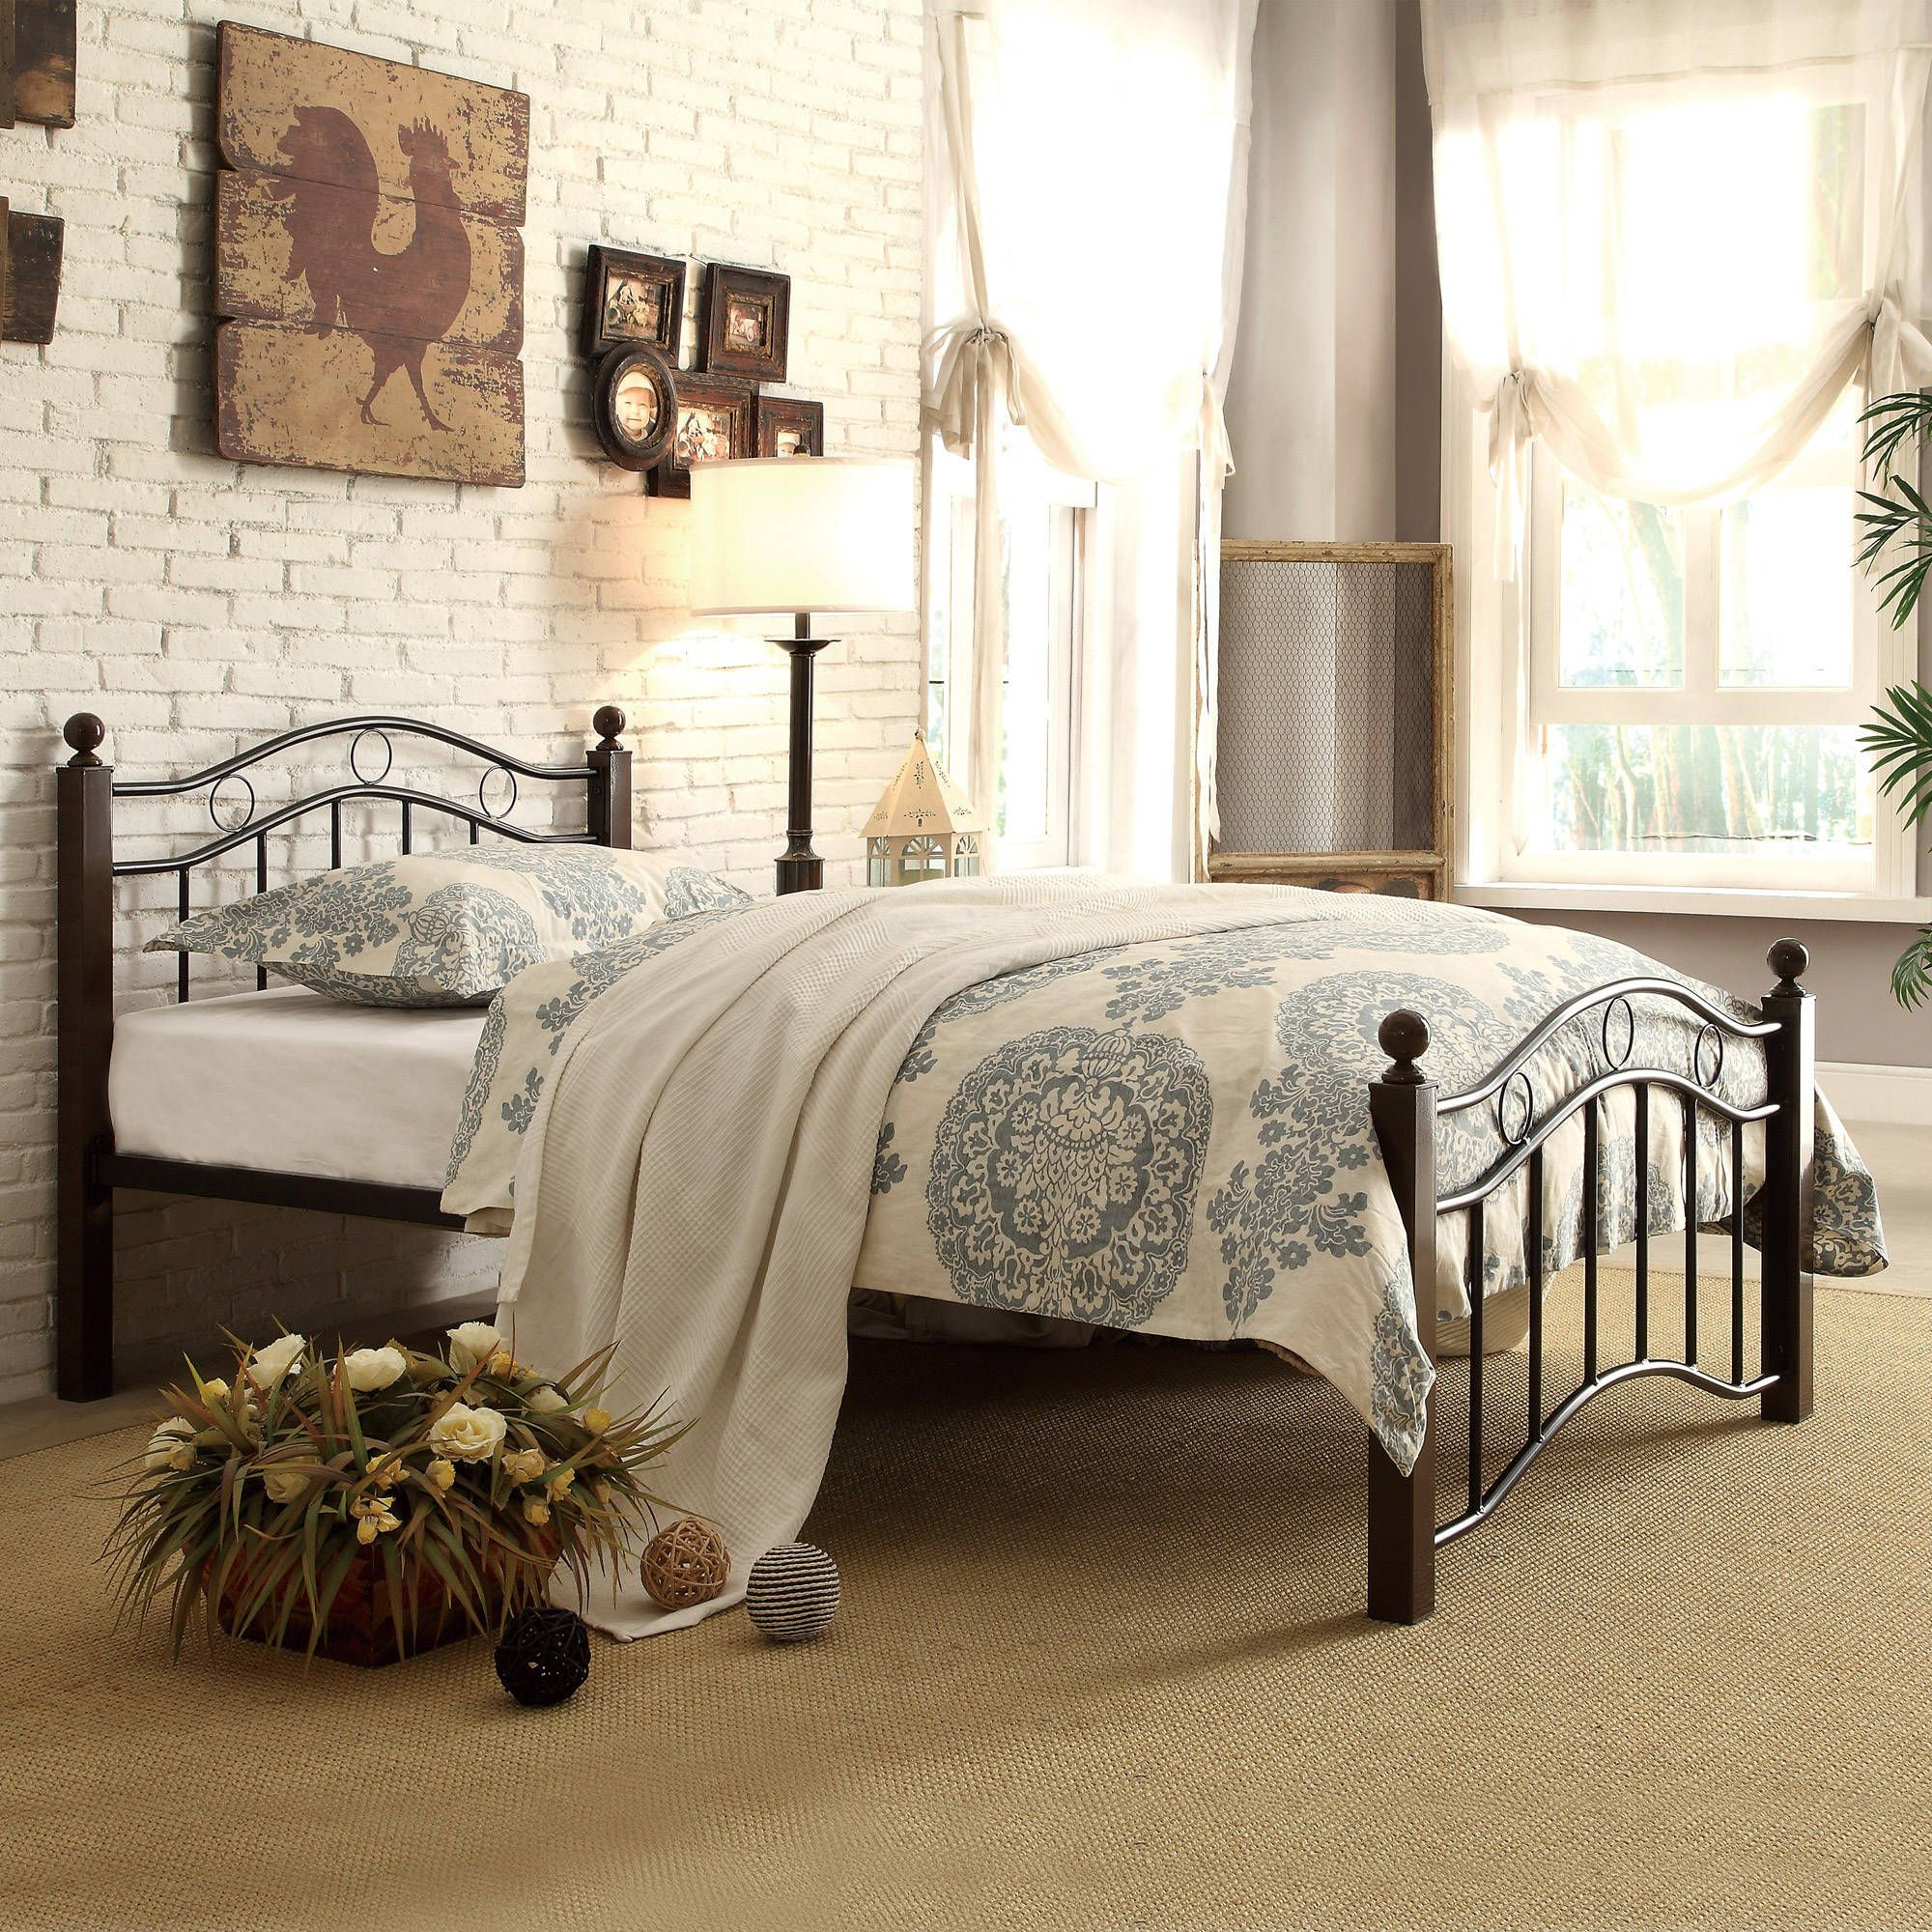 Search and Compare more Furniture Deals at http://extrabigfoot.com ...